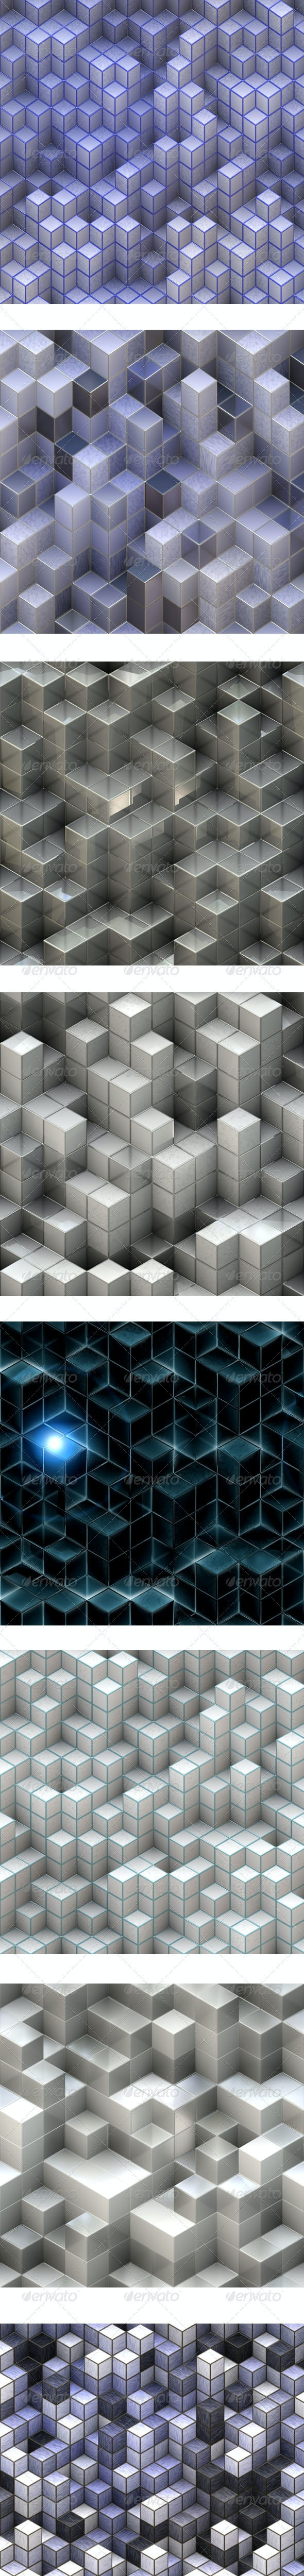 8 Abstract Cubes Backgrounds - Abstract Backgrounds